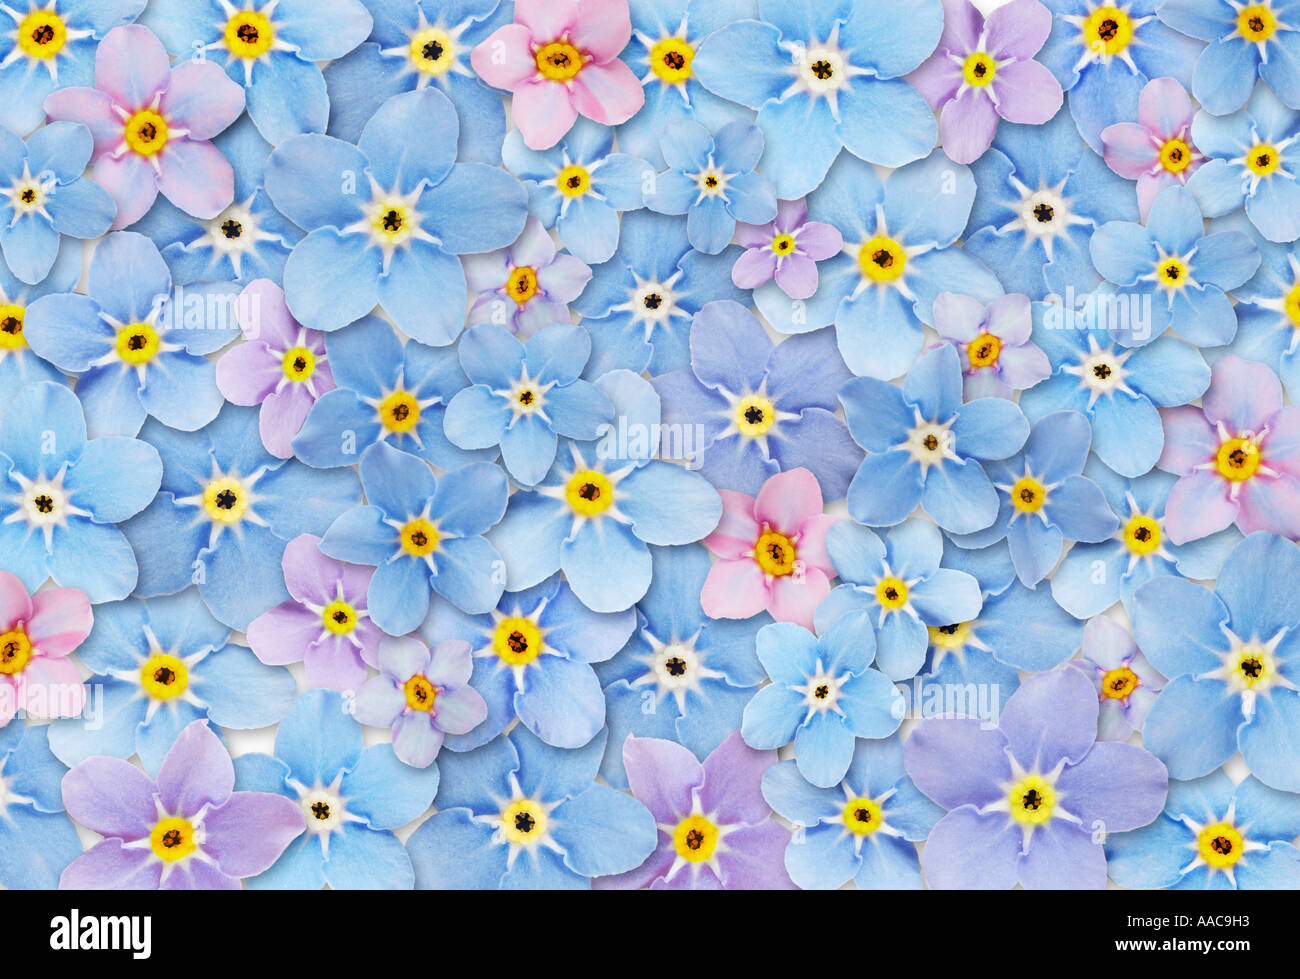 Abstracted Forget Me Not Flowers Texture Background (composite) - Stock Image